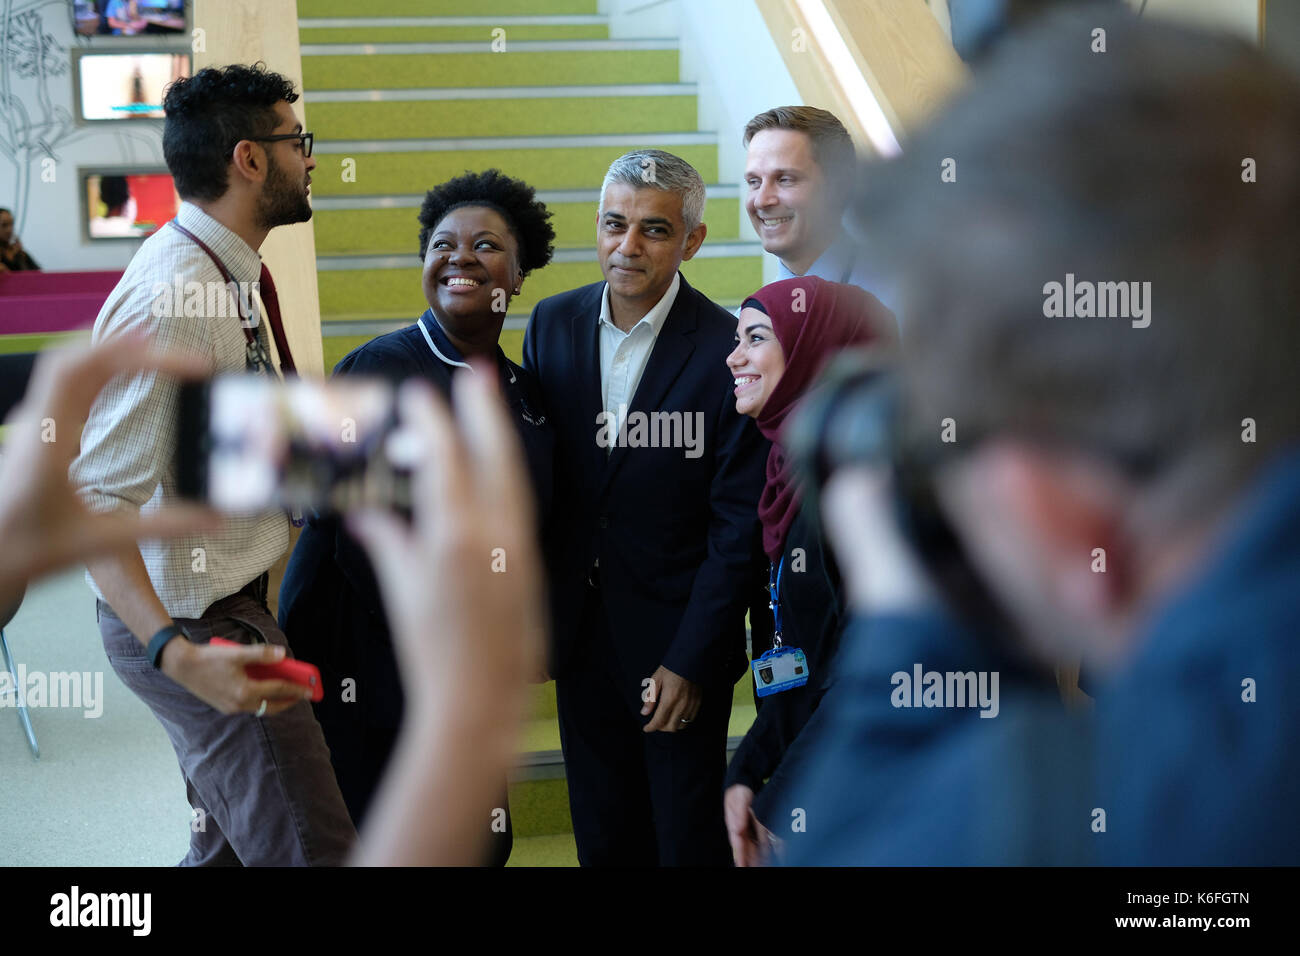 Mayor of London Sadiq Khan visits the Sir Ludwig Guttmann Health & Wellbeing Centre in the Olympic Park in east London to give his views on proposals for the future of NHS services in the city. - Stock Image